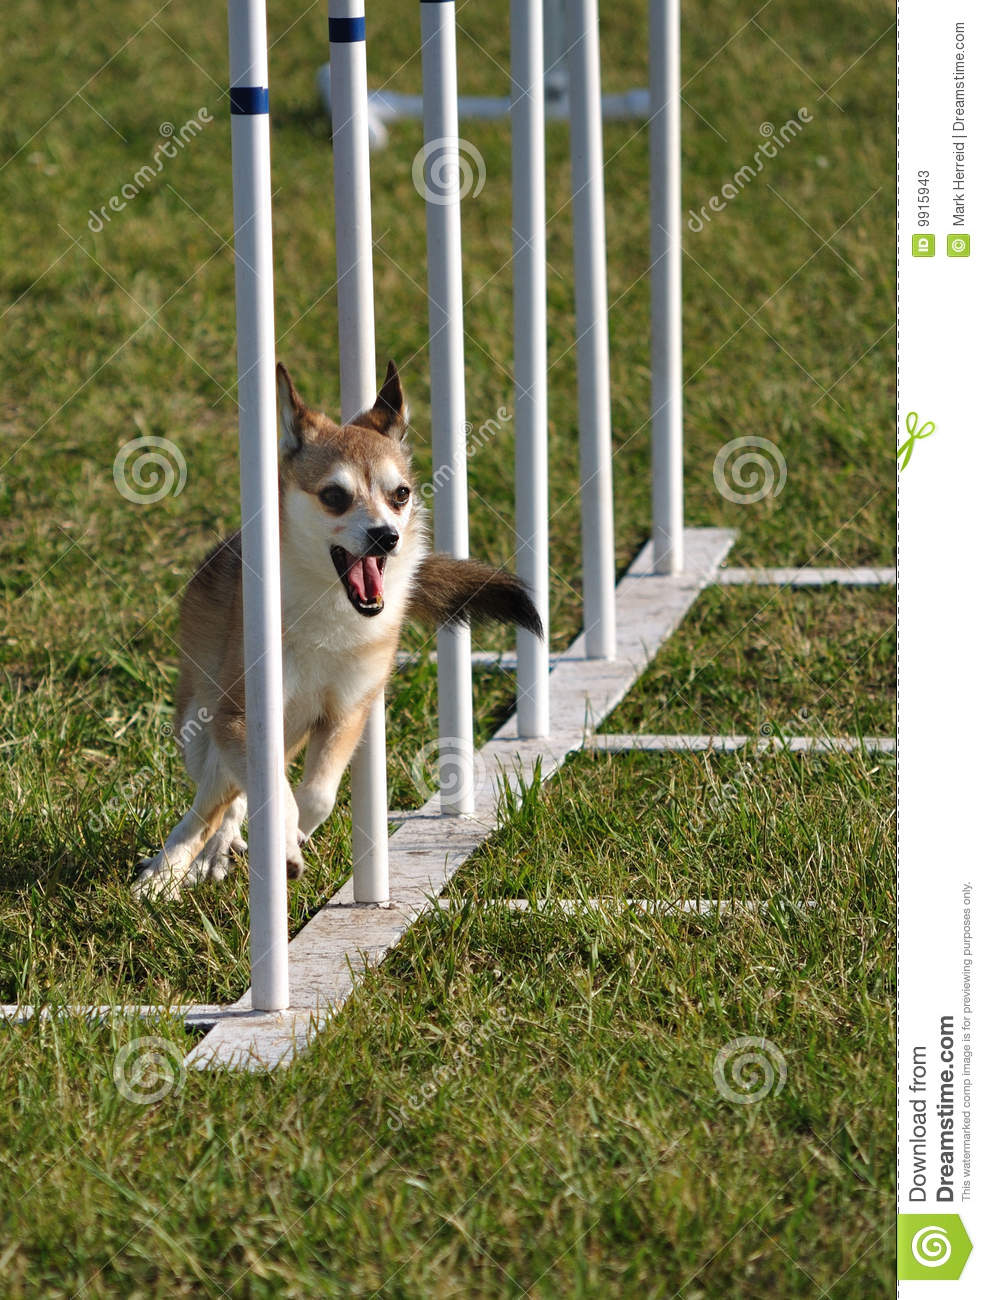 Norwegian Lundehund weave poles at agility trial